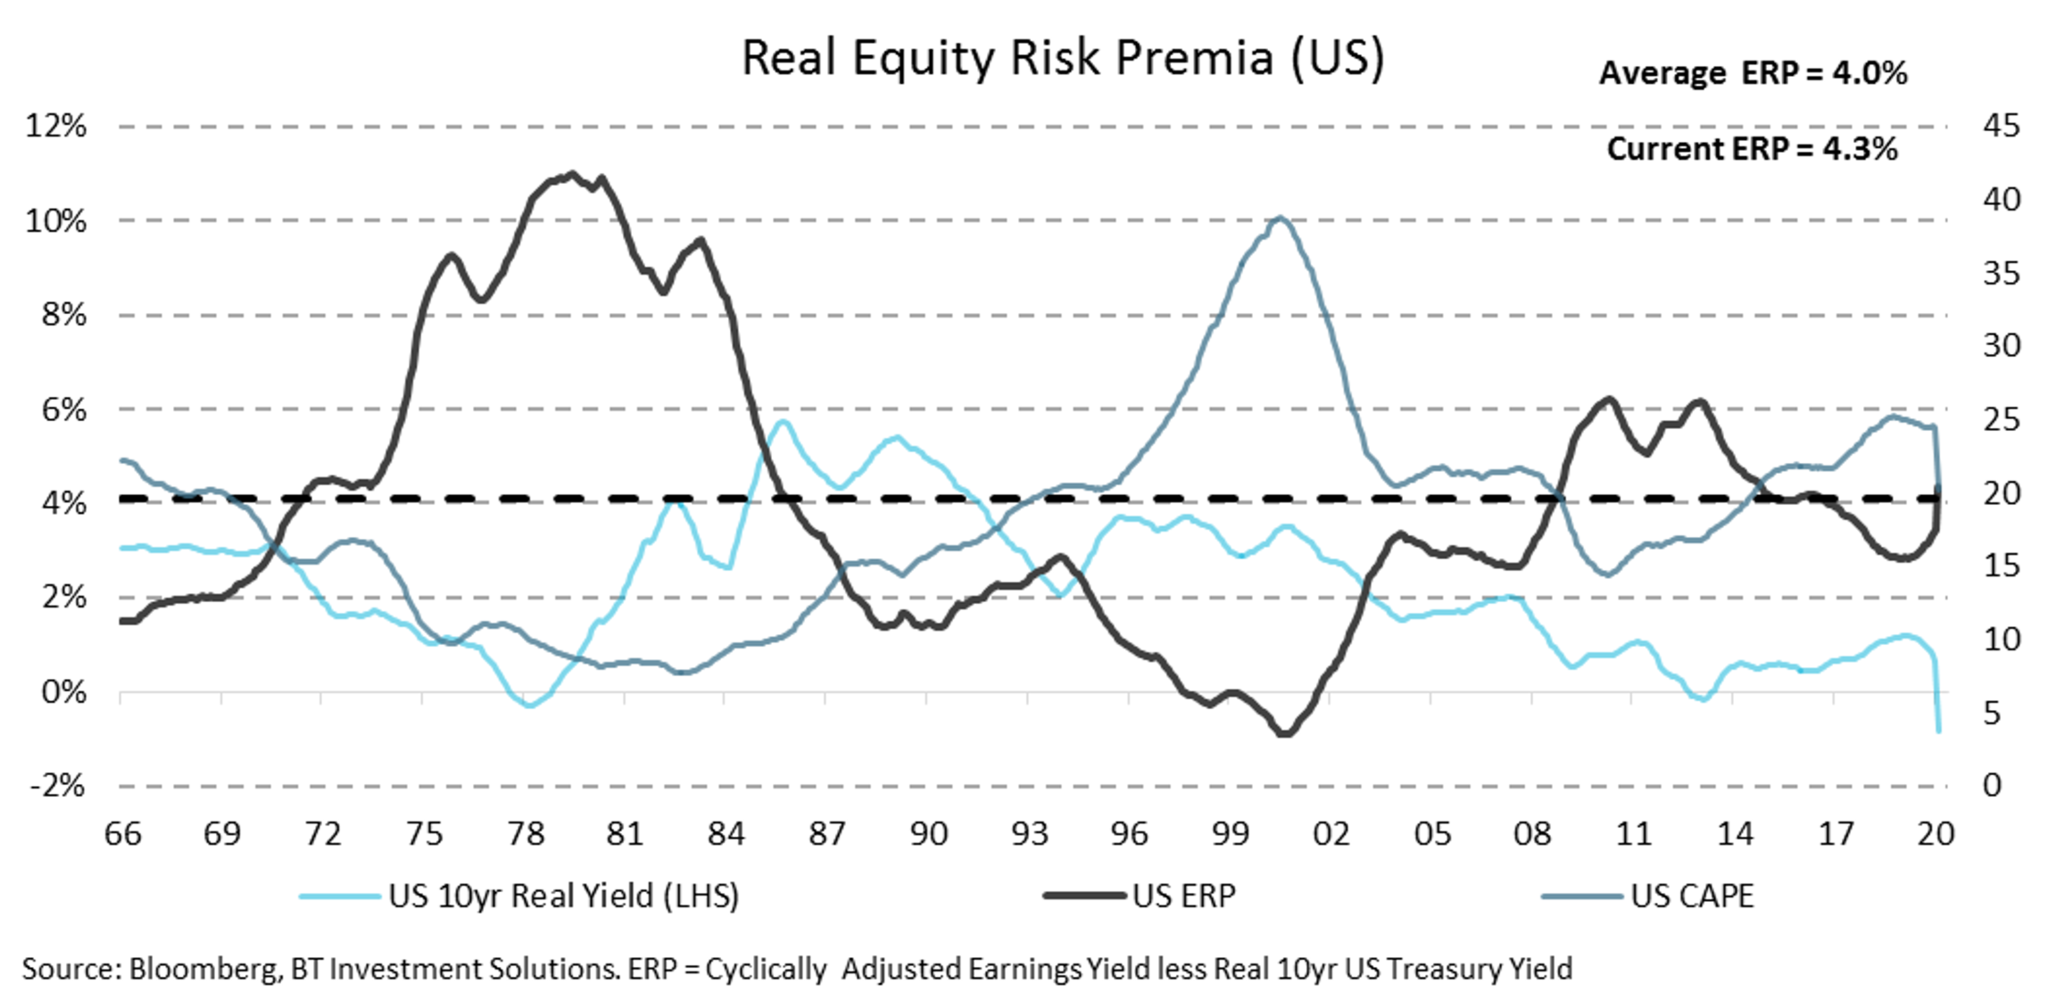 This chart shows the spread (i.e. difference in returns) between the US equity markets and the US 10 year bond yield. The spread is now 5% which is a number not seen since the Global Financial Crisis.